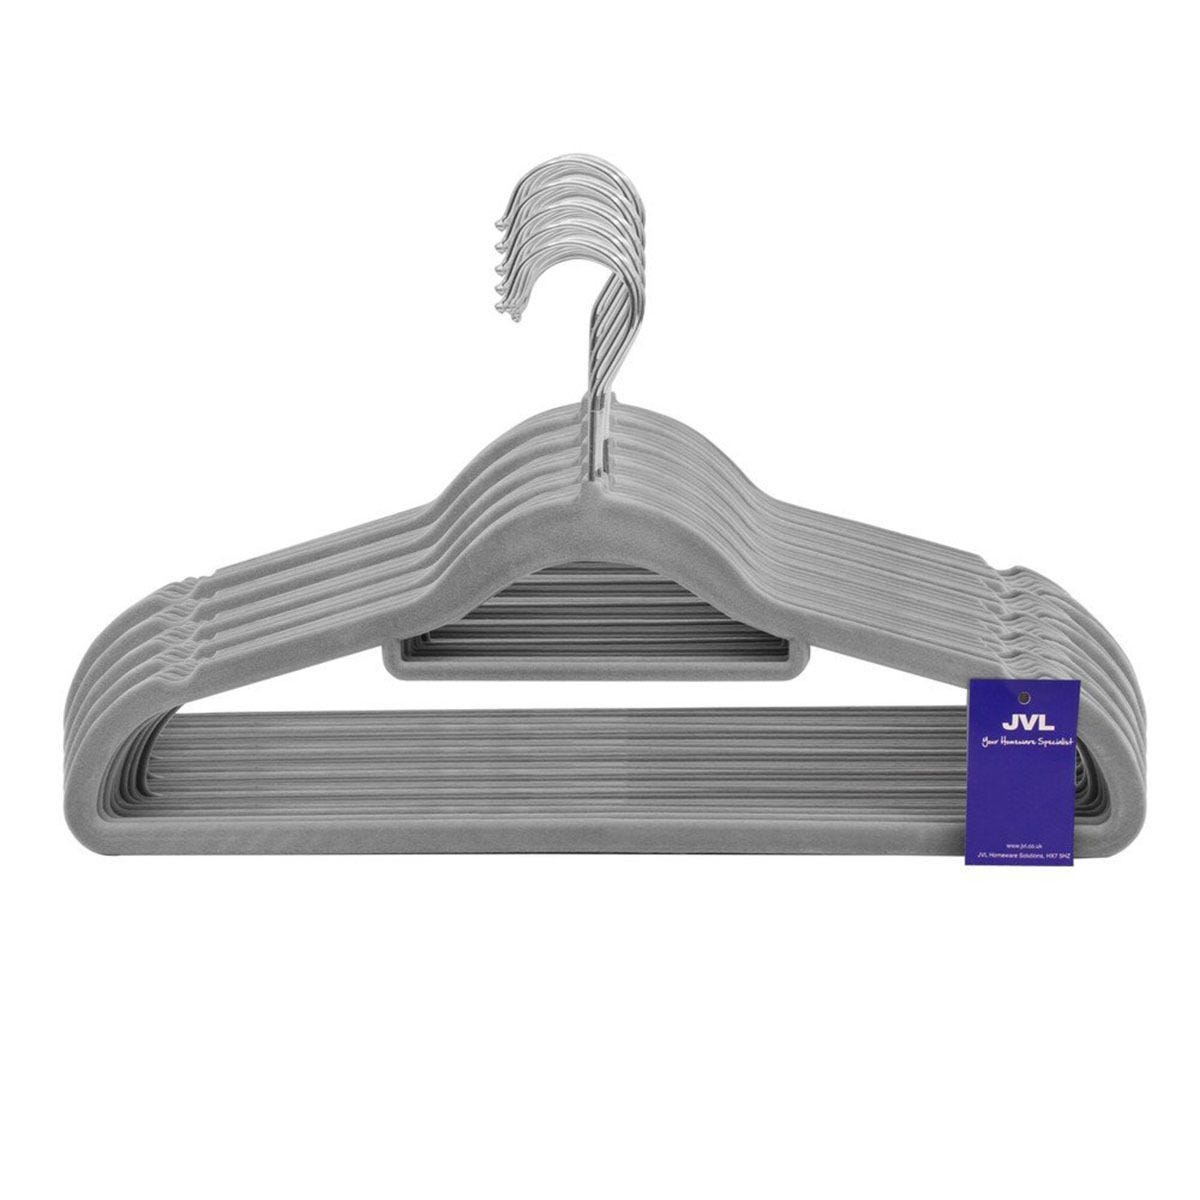 JVL Grey Velvet Touch Non-Slip Medium Coat Hangers - Pack of 100